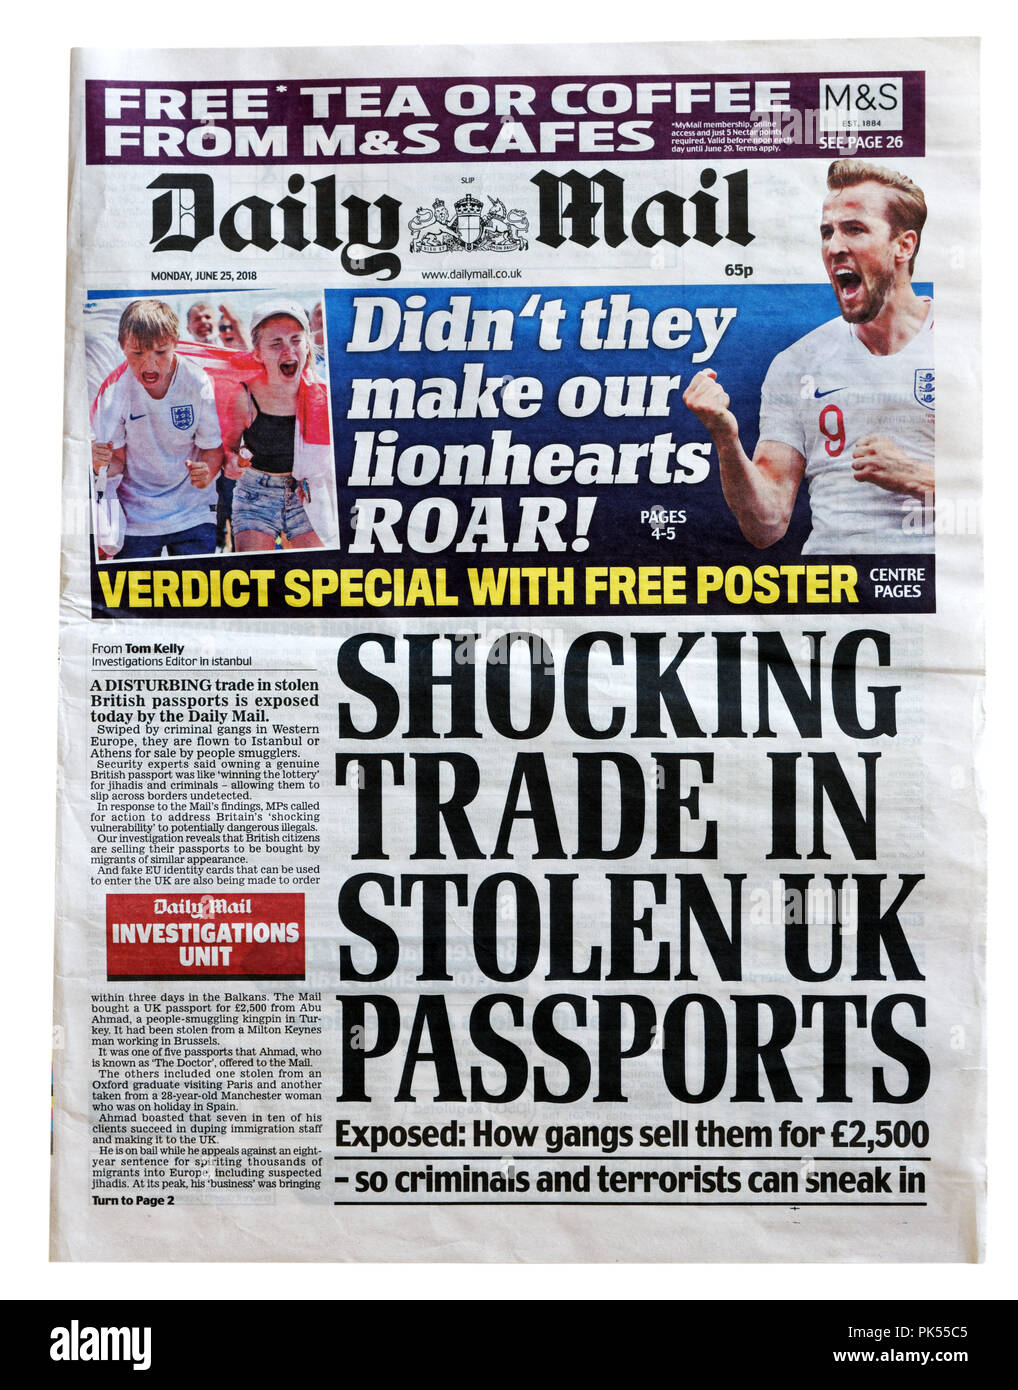 Front page of the Daily Mail with the headline Shocking Trade in Stolen UK Passports, revealing the sale of stolen passports and ID on social media - Stock Image